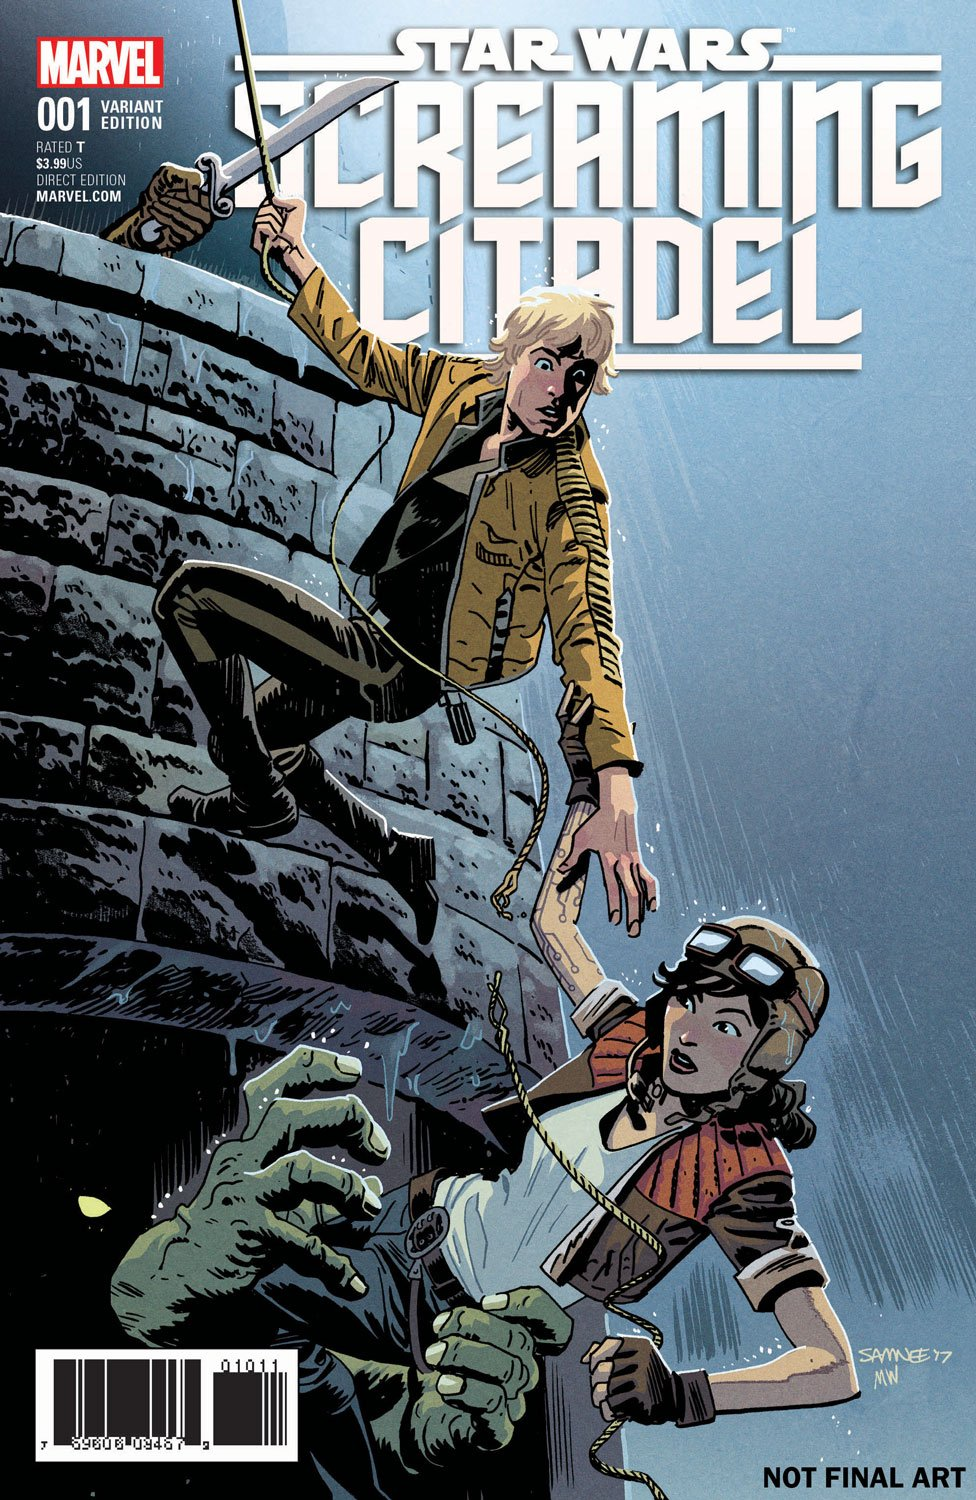 Star Wars: The Screaming Citadel #1 Review